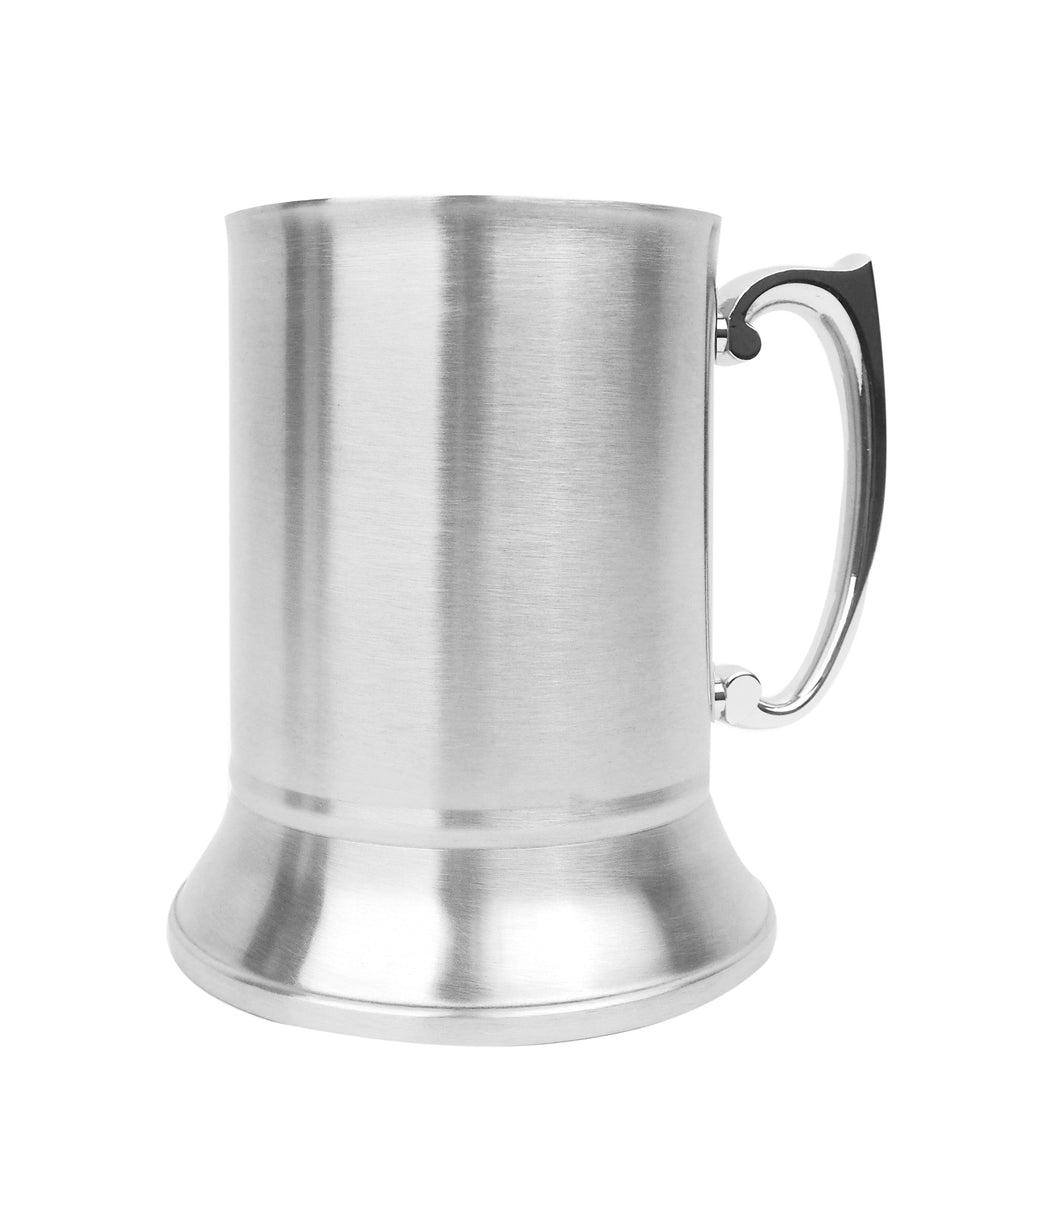 Blazer Mug - 480ml | 304 Stainless